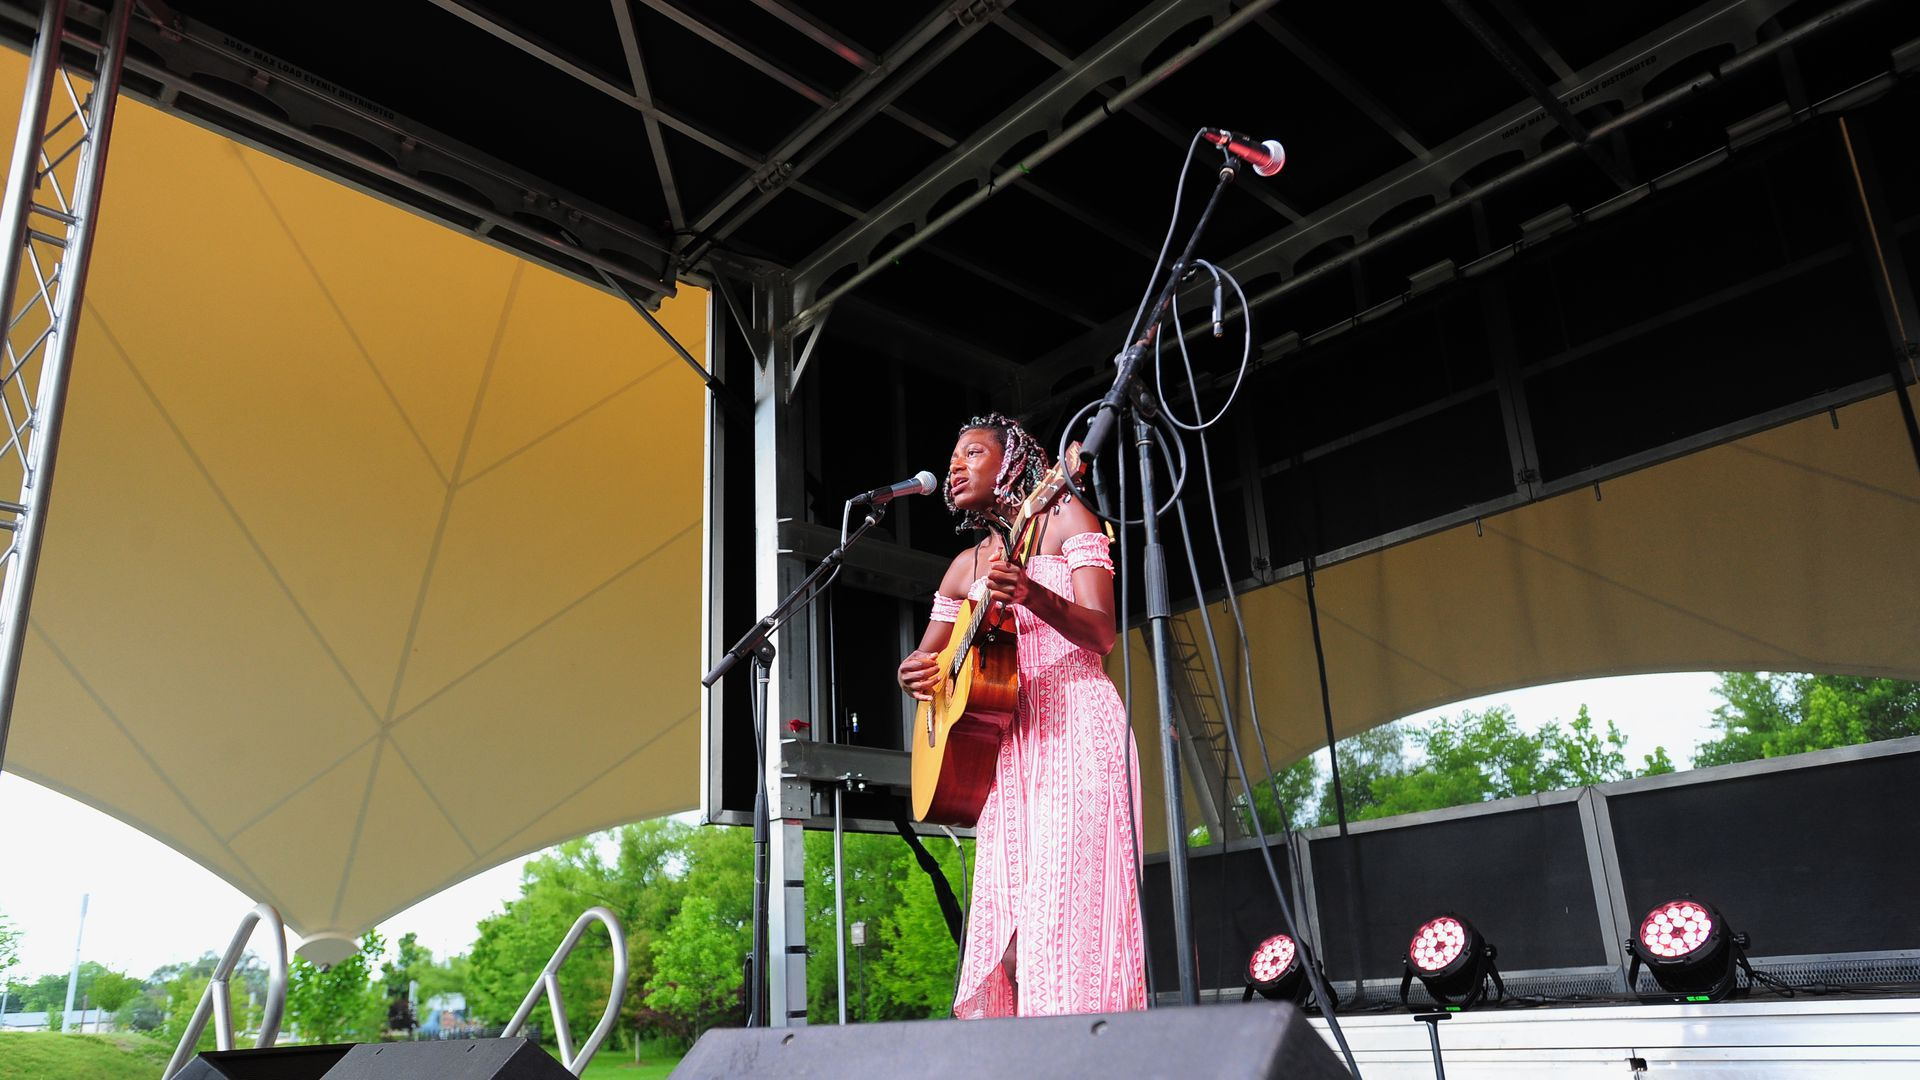 A woman stands on stage playing guitar and singing into a microphone